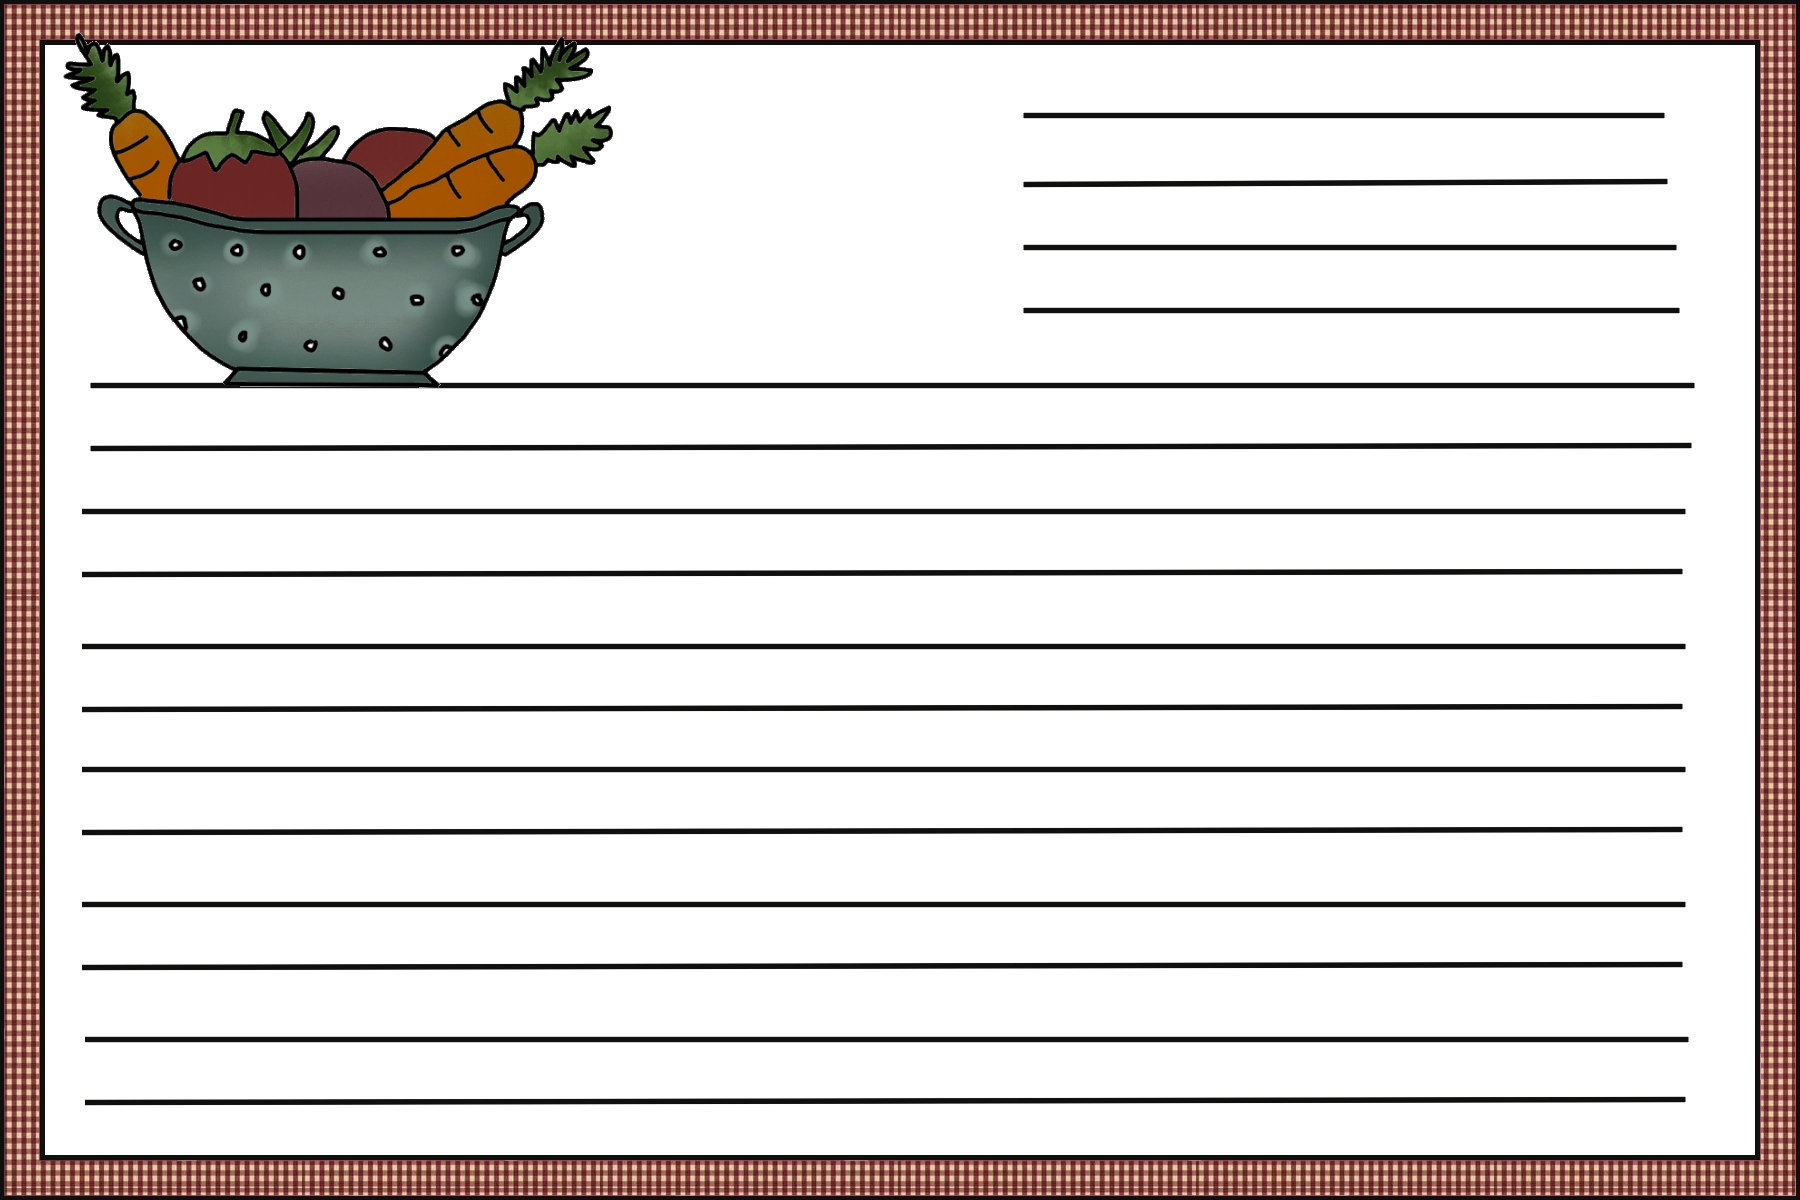 8 Best Images of Free Printable Recipe Templates Online ...